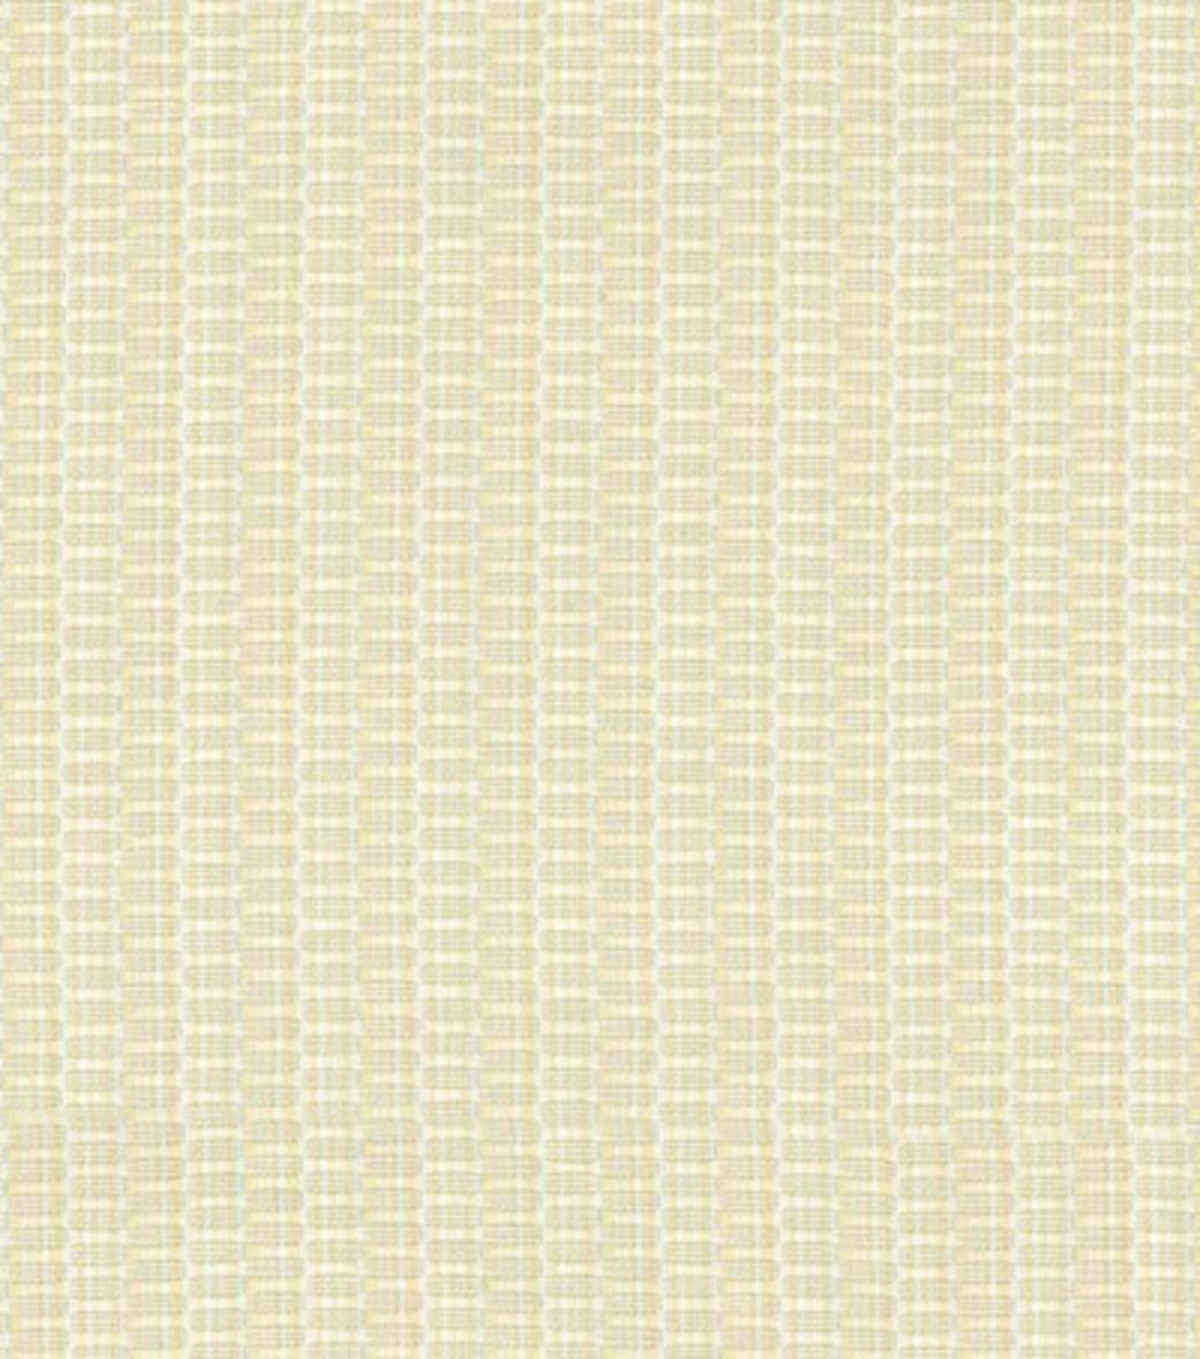 Home Decor 8\u0022x8\u0022 Fabric Swatch-Dena Dream Weaver Ivory